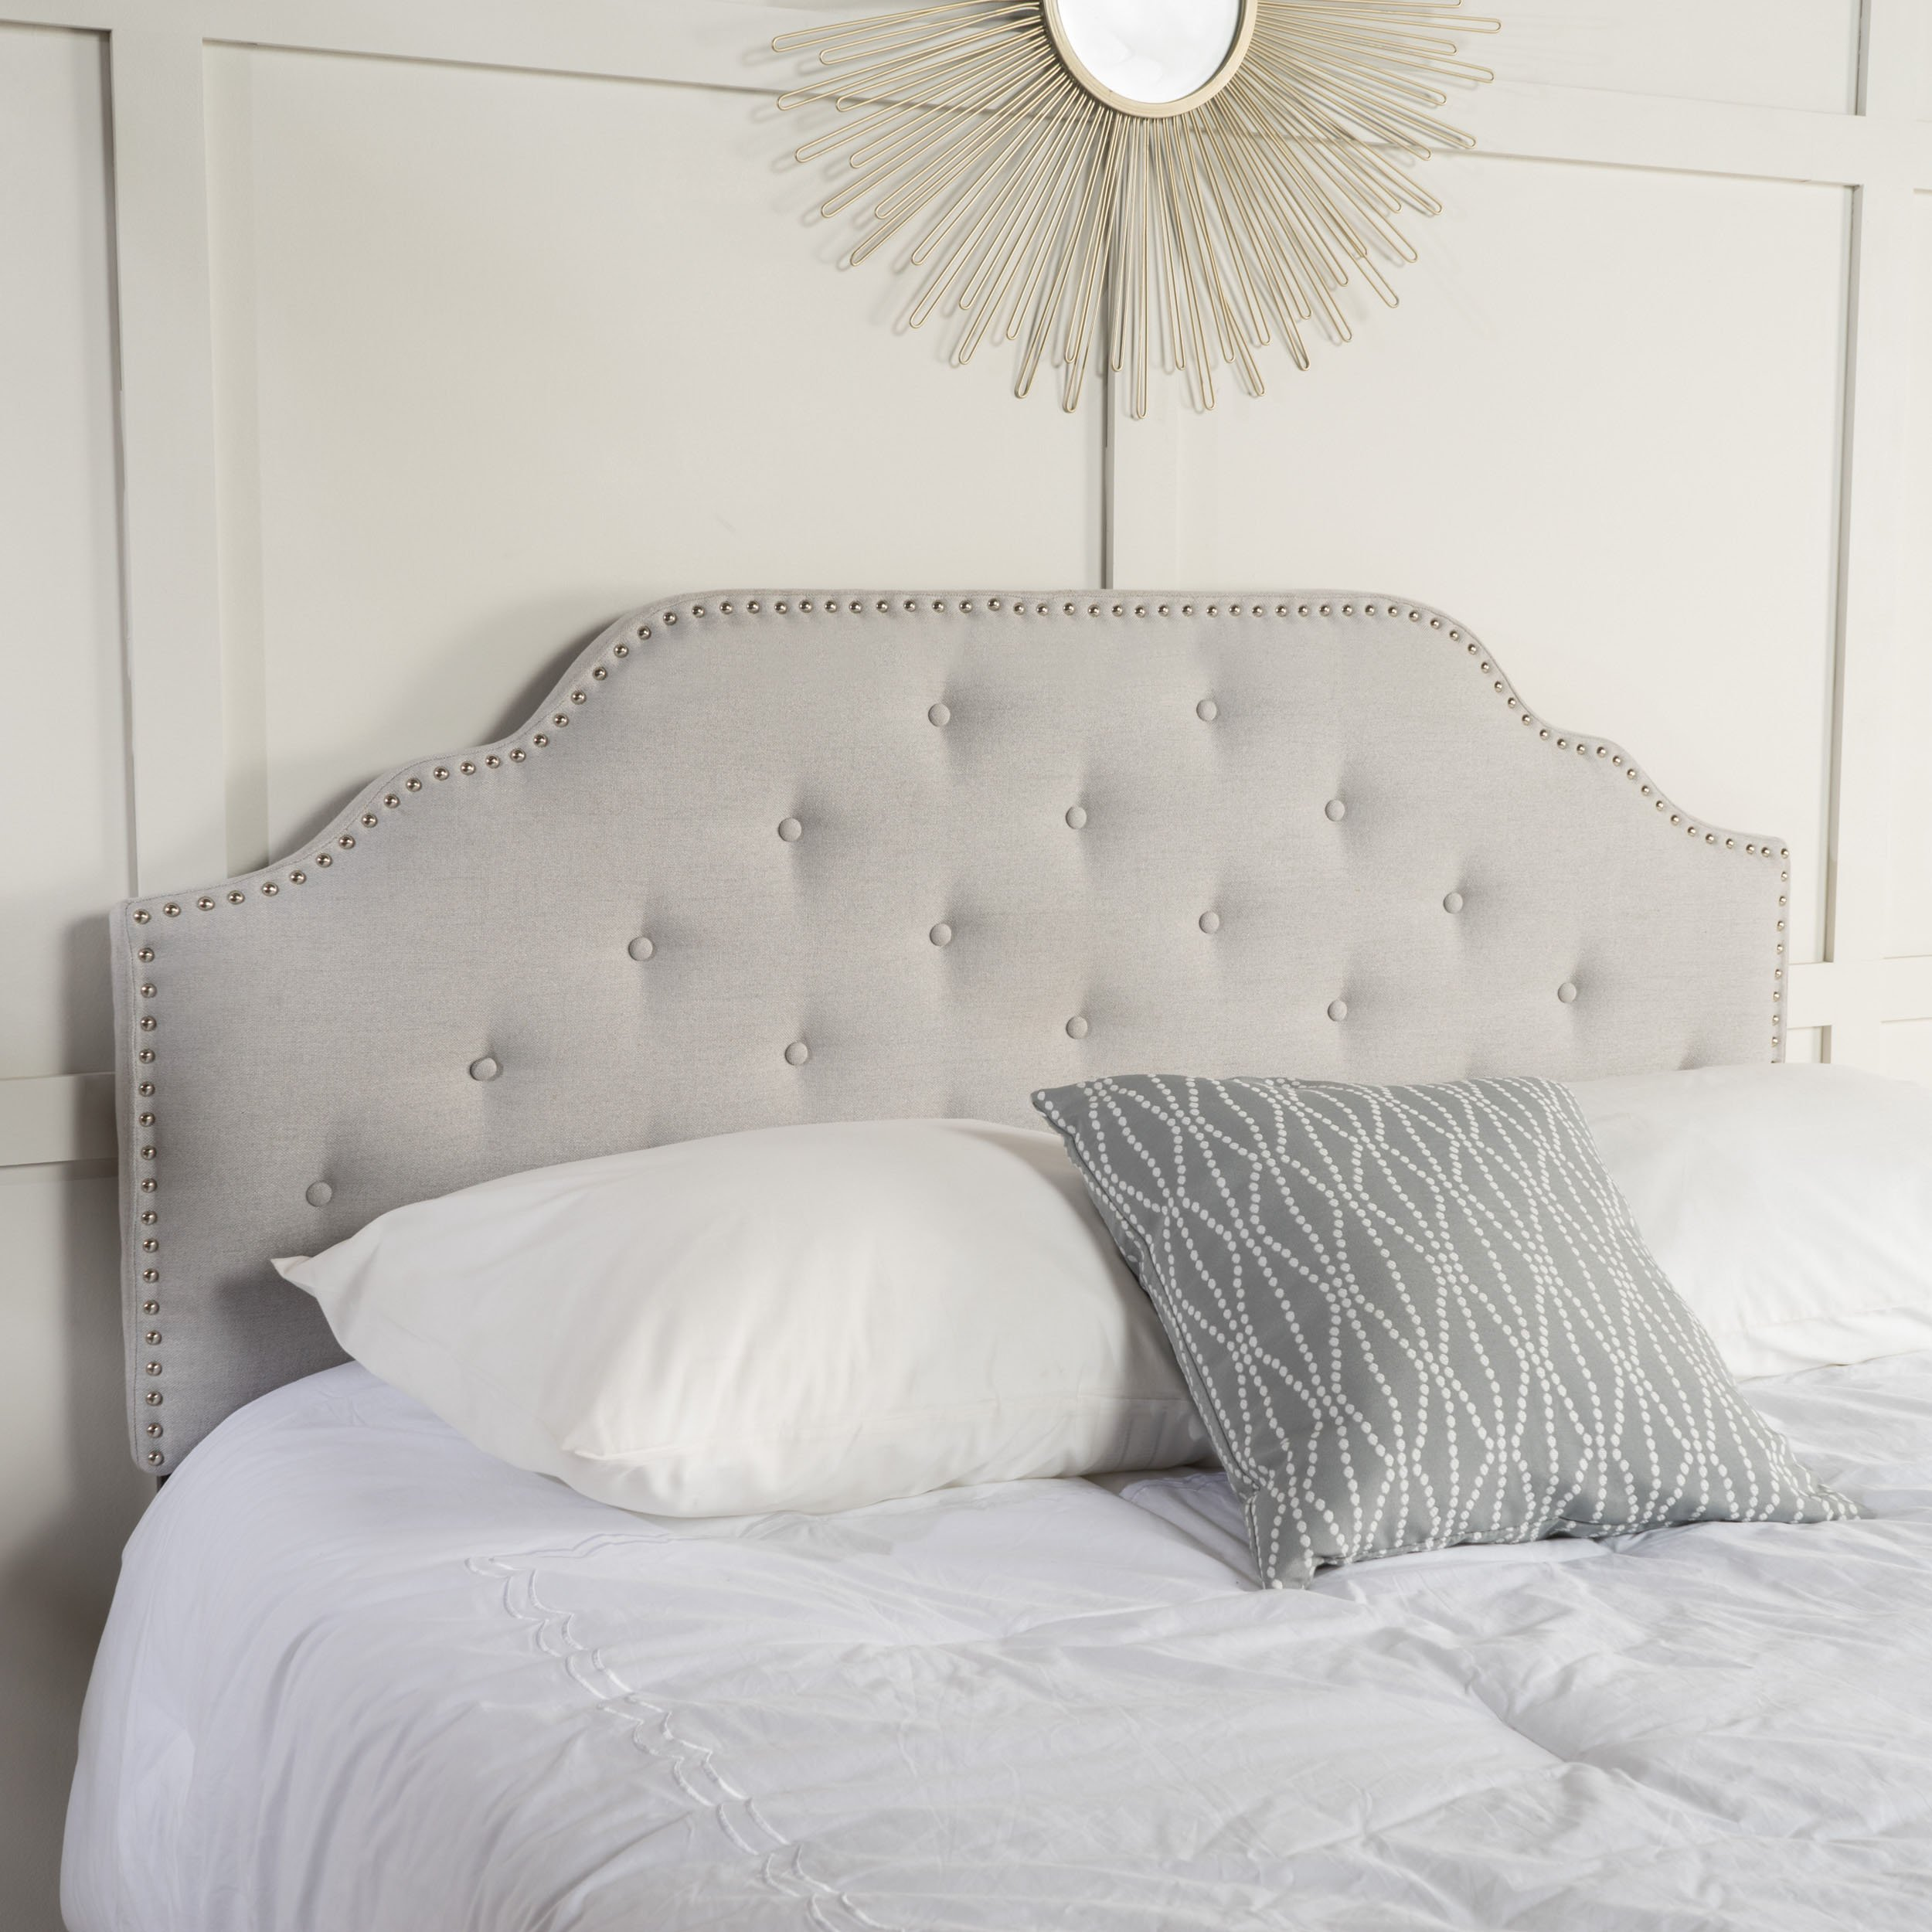 Christopher Knight Home 298920 Soleil Queen/Full Headboard, Gray